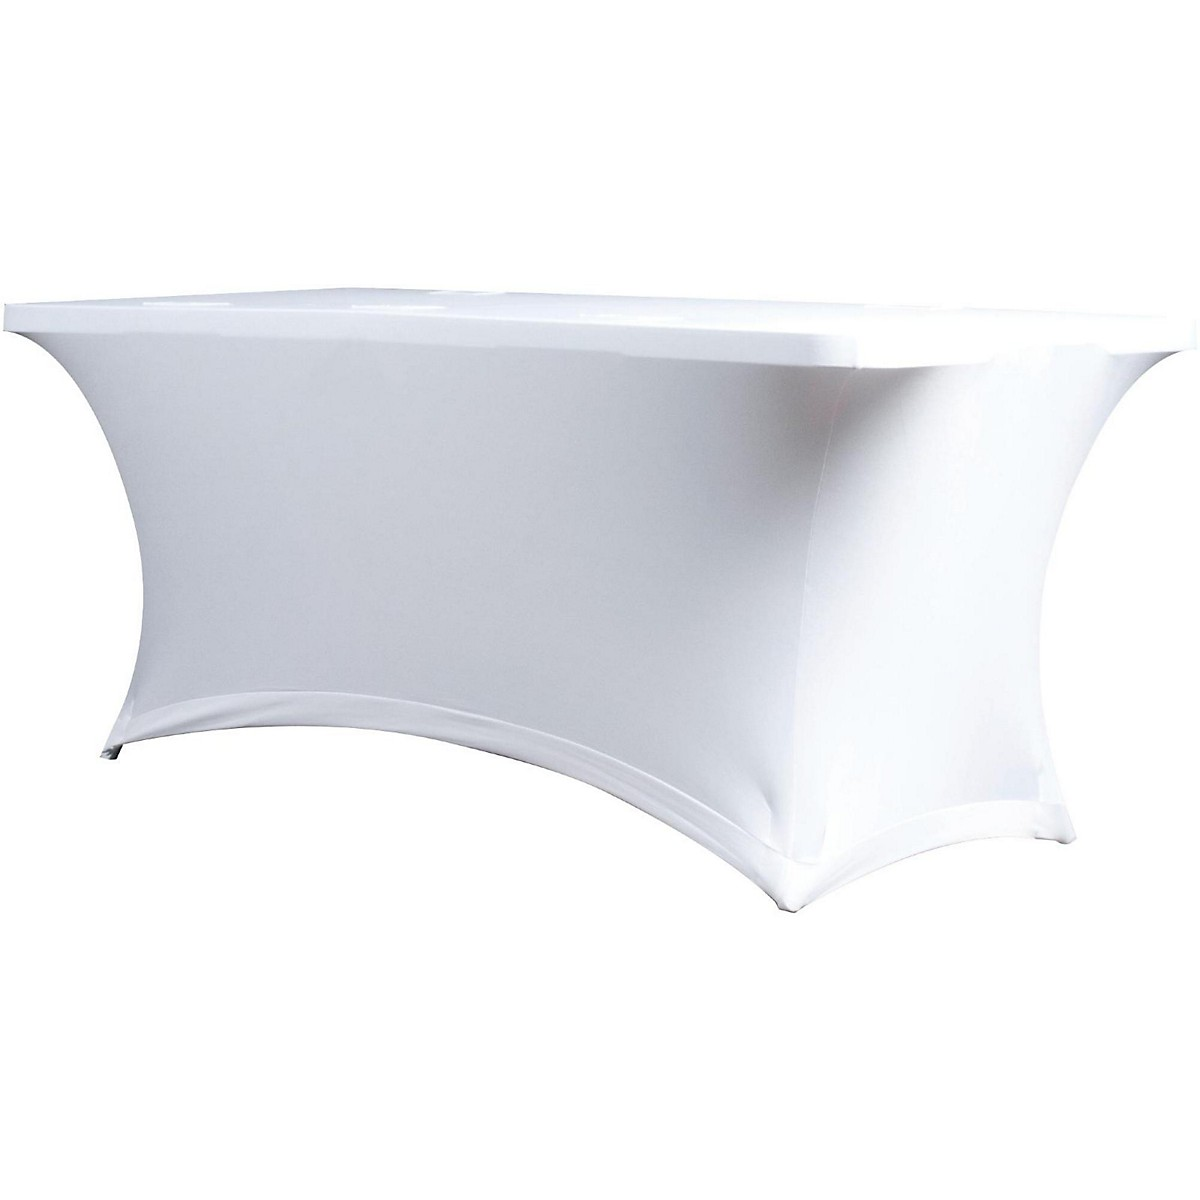 American DJ HD Table Scrim WHITE